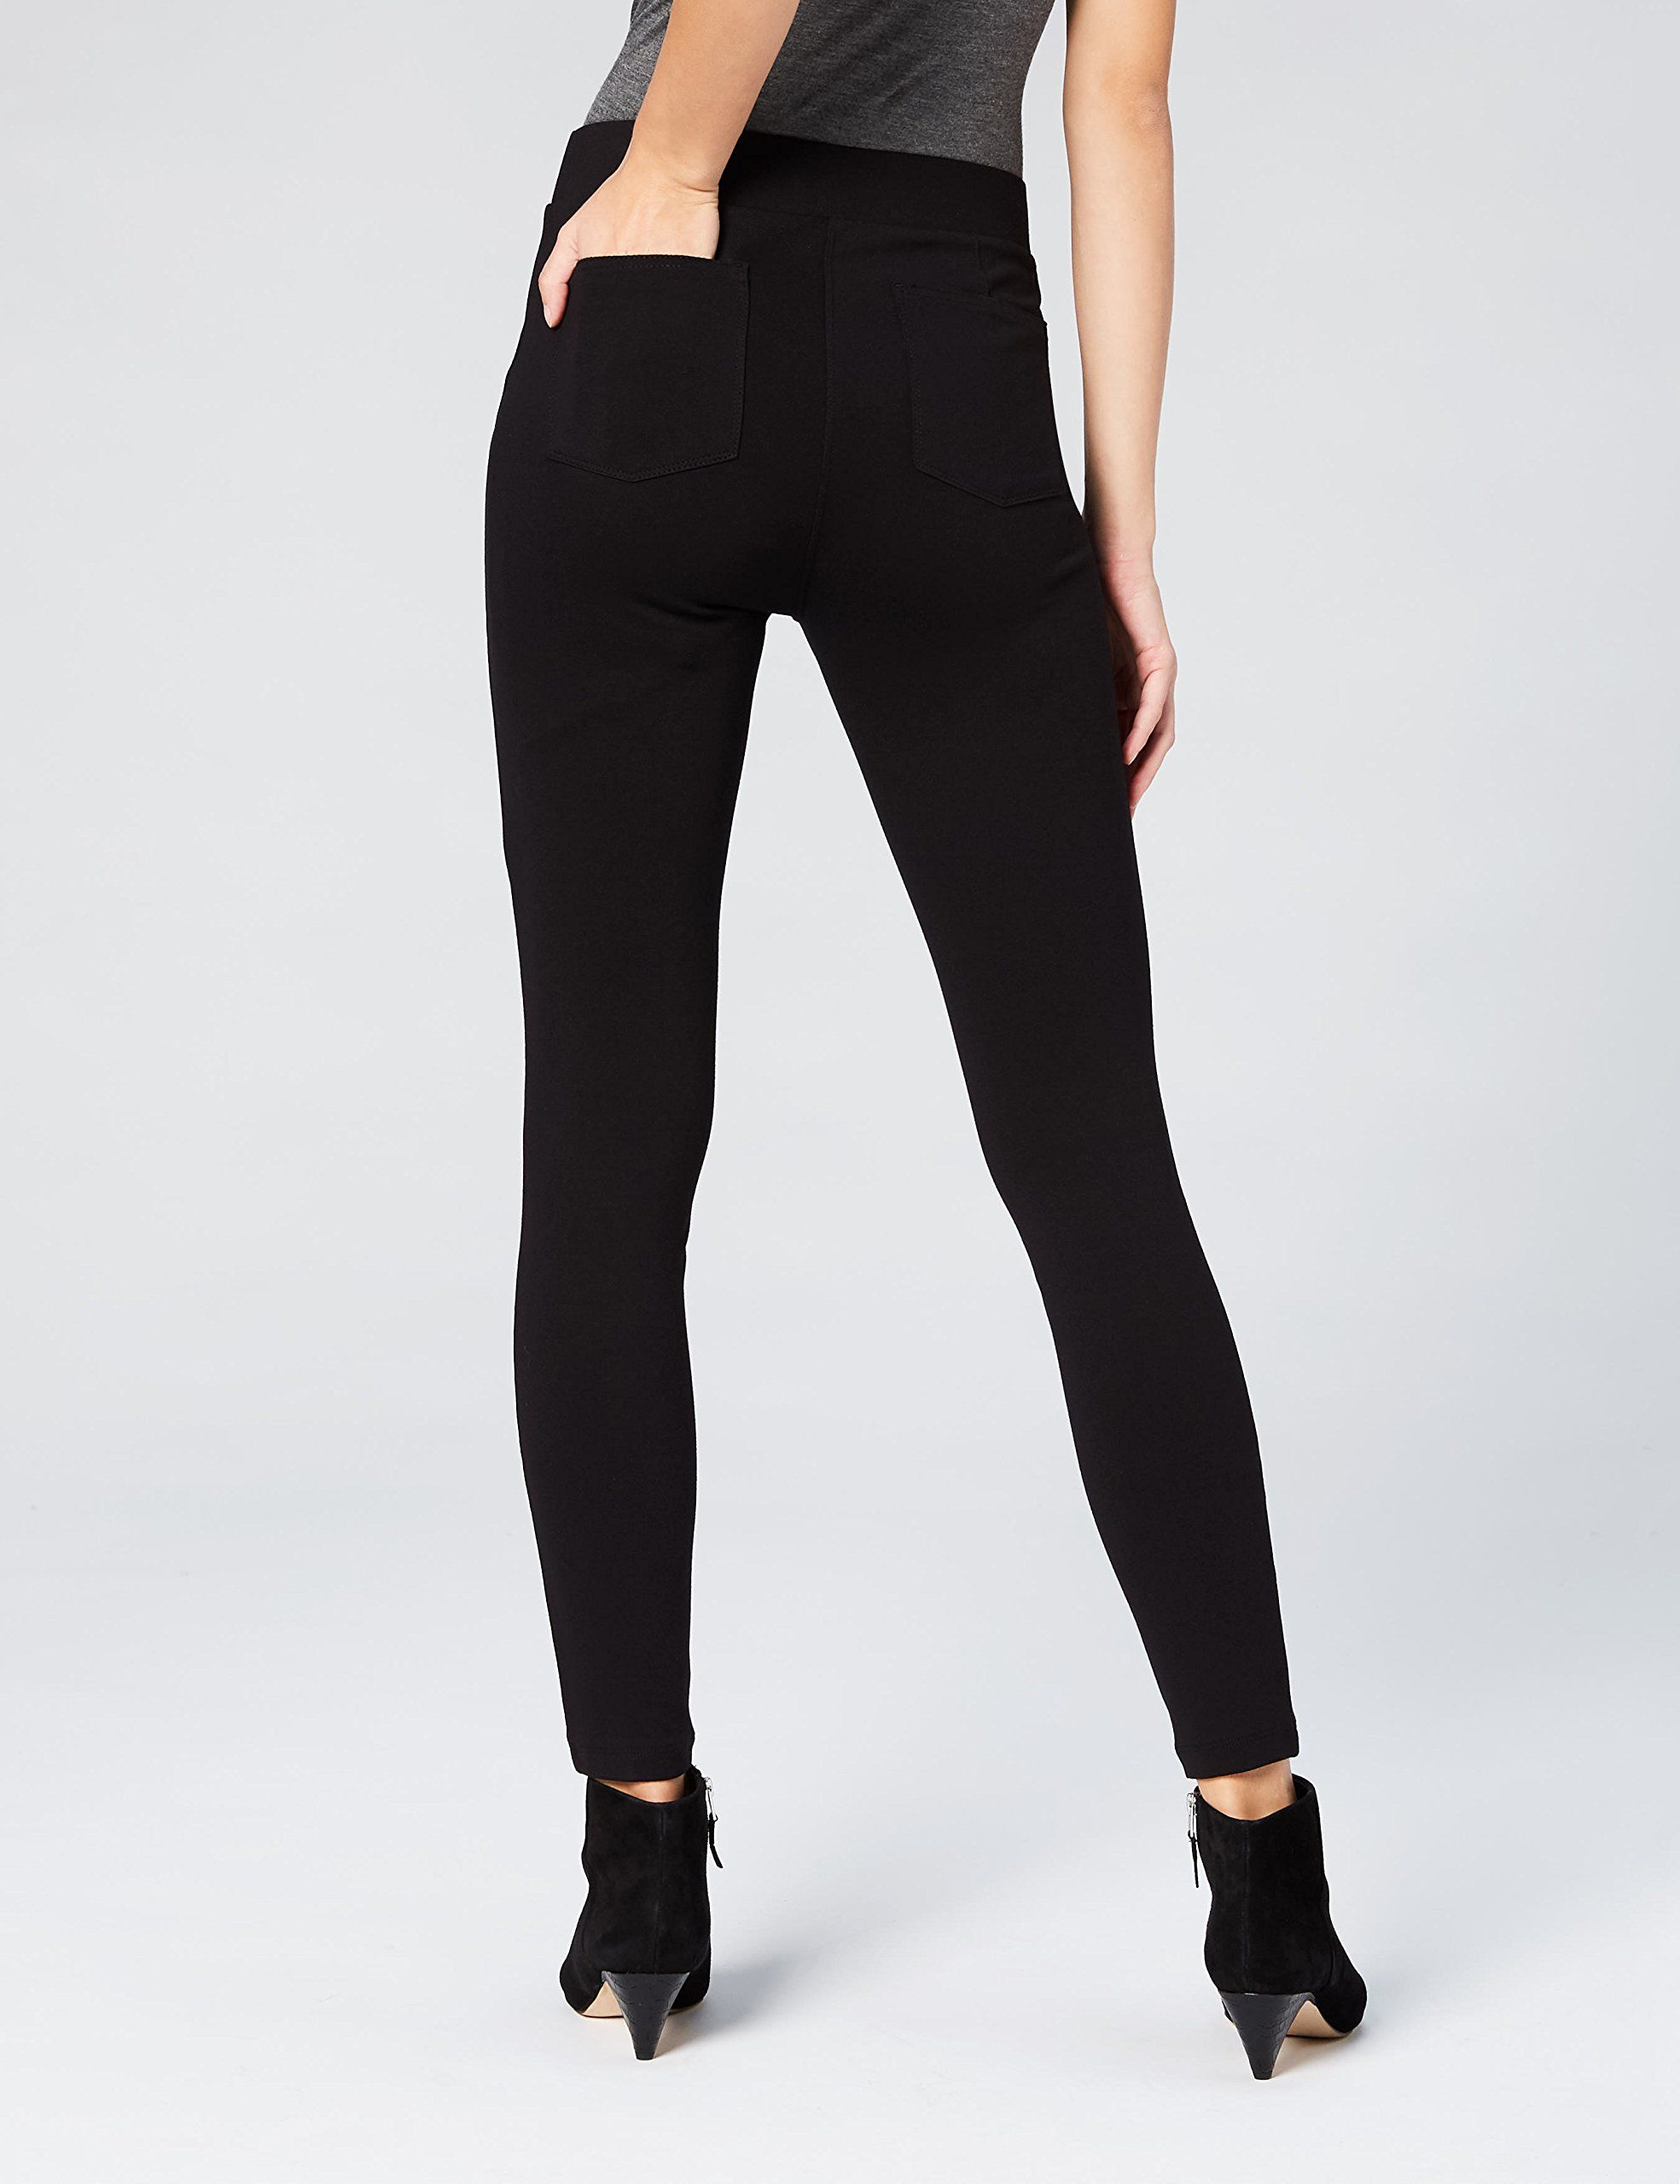 da44d34c77 Daily Ritual Women's Seamed Front 2Pocket Ponte Knit Legging Black XS  Long >>> Check this awesome product by going to the link at the image.